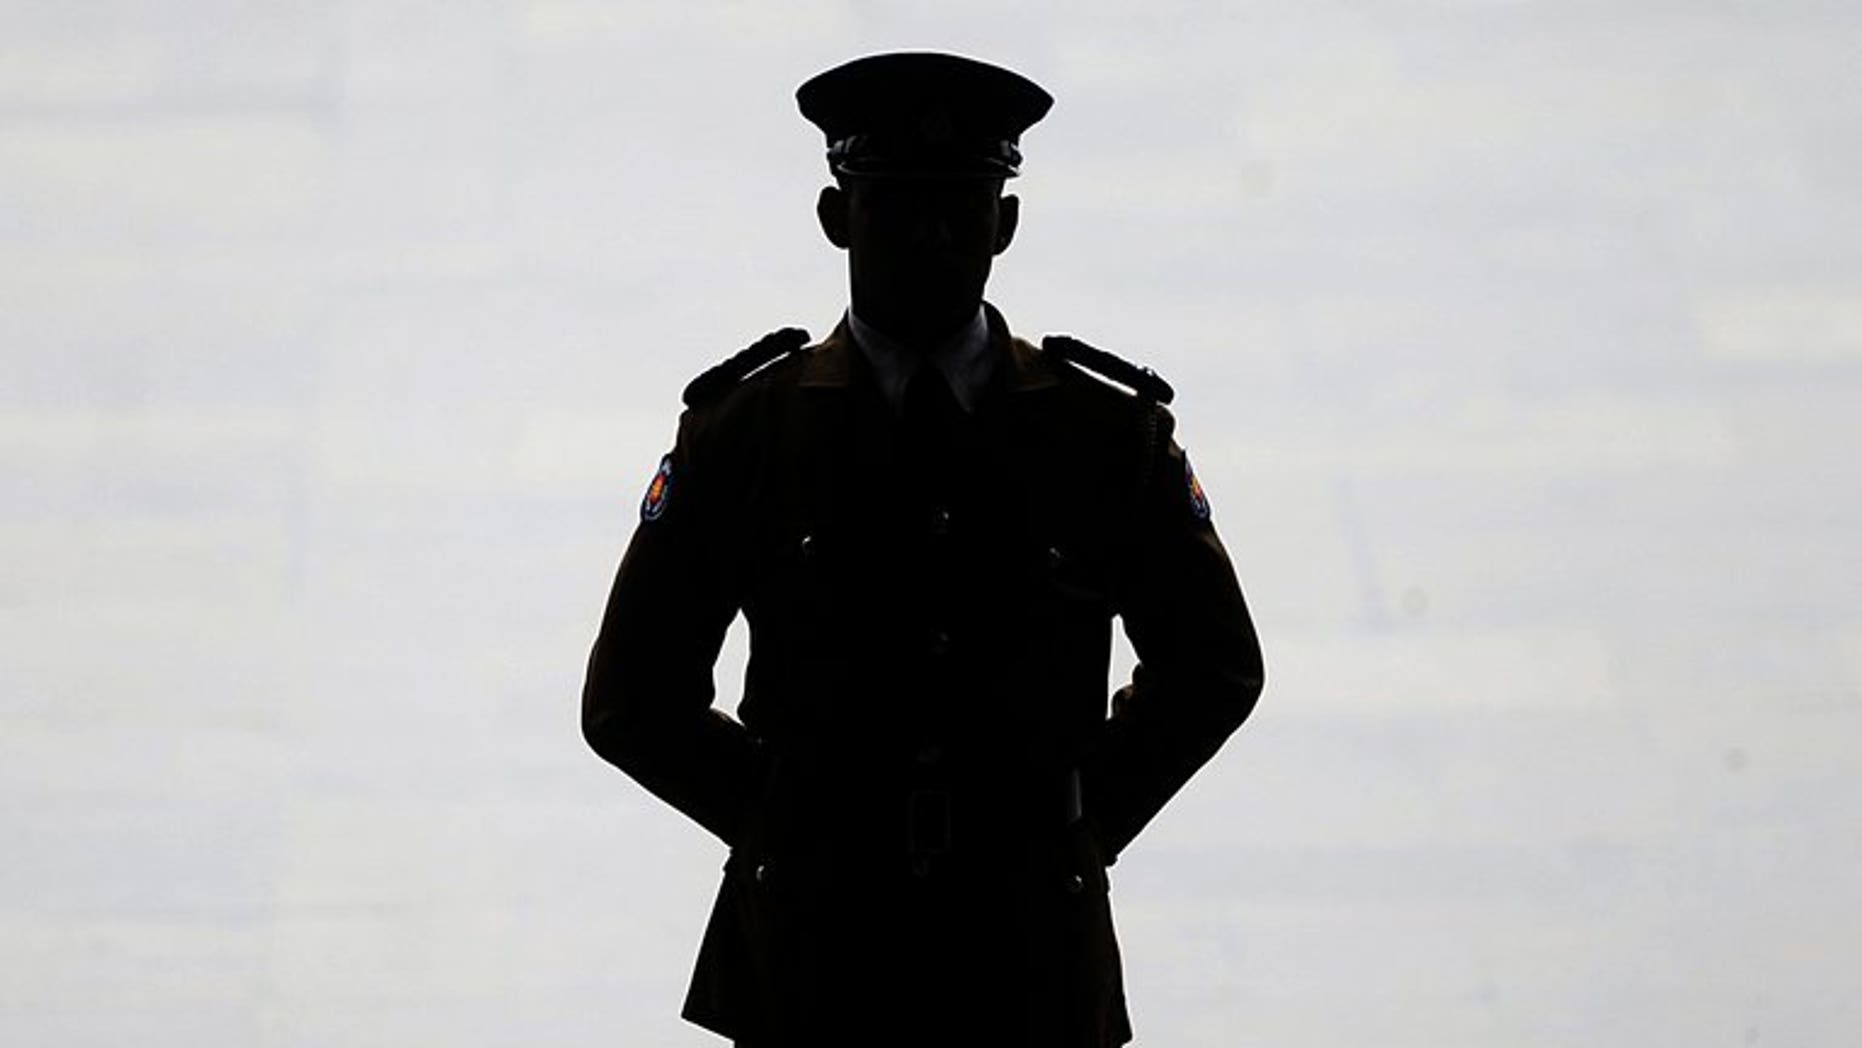 A Sri Lankan police officer keeps watch at parliament in Colombo on May 31, 2013. Sri Lanka's president has bowed to international pressure and relinquished the defence ministry's authority over the police department, an official said Friday.